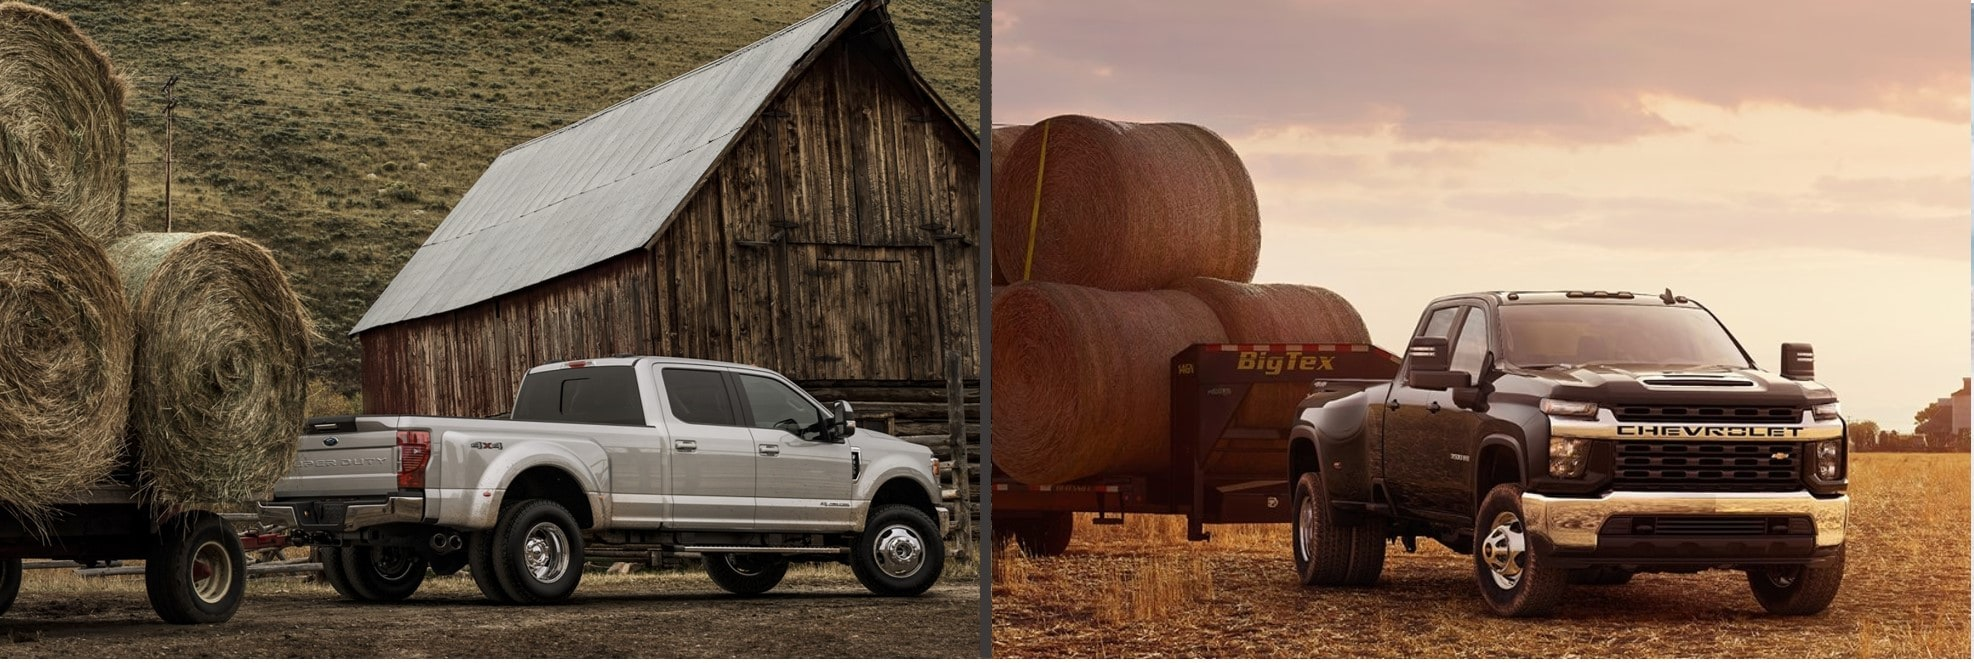 A 2020 F-150 towing rolled hay bales next to a 2020 Chevy Silverado 2500 towing hay bales.